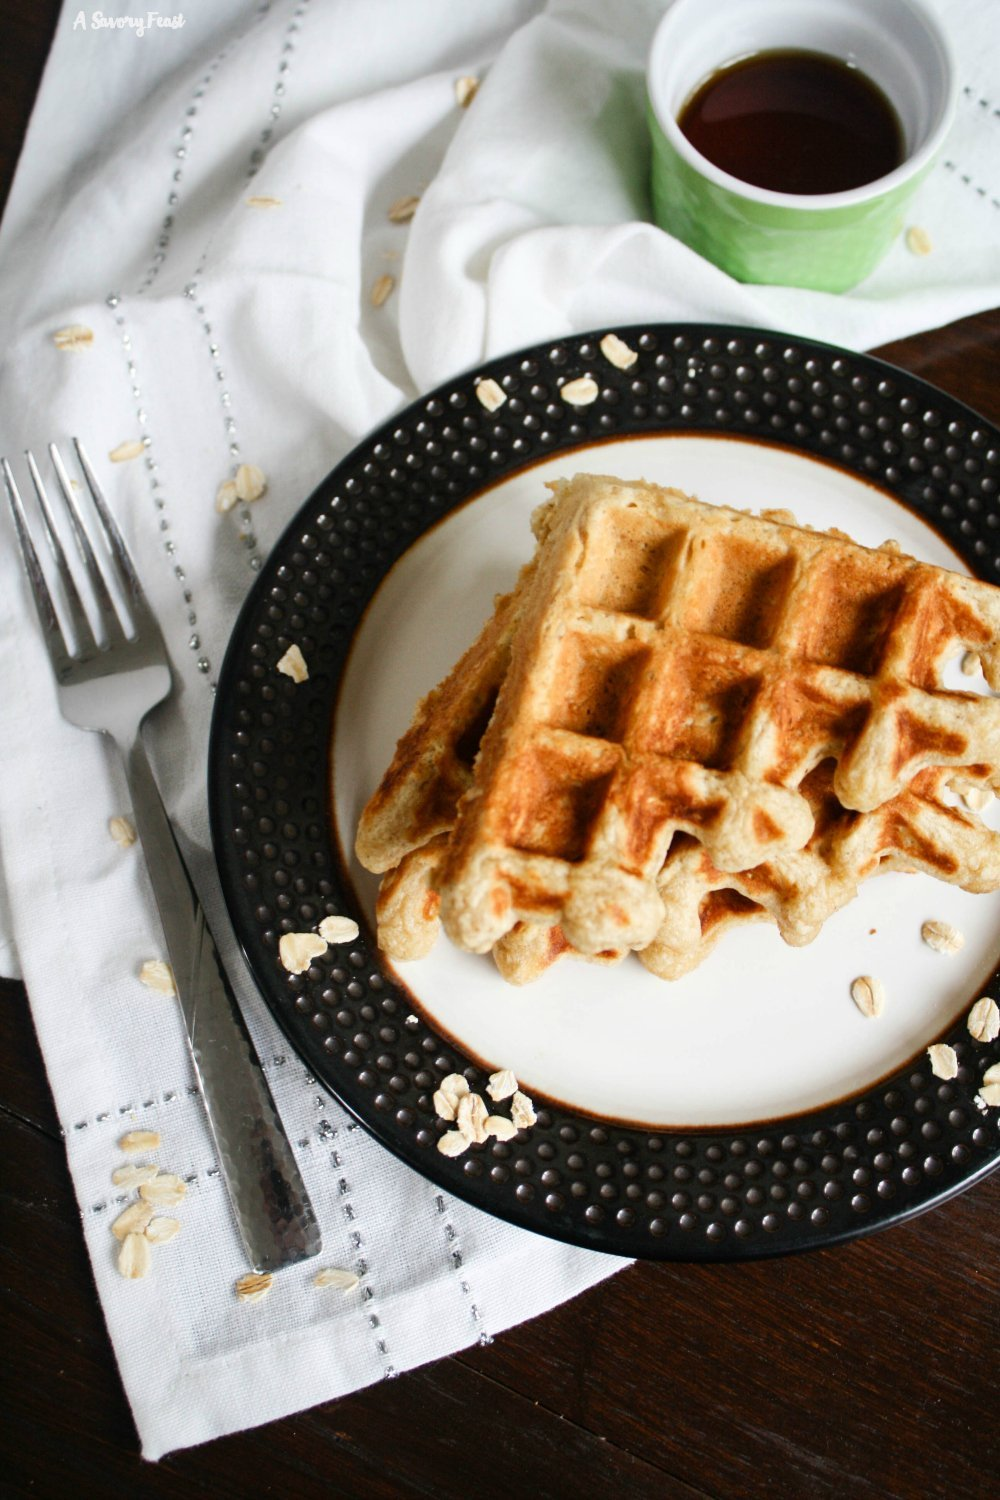 Hearty Oatmeal Waffles are a wonderful start to your weekend. This waffle batter is simple to mix up with ingredients you probably have in the house.